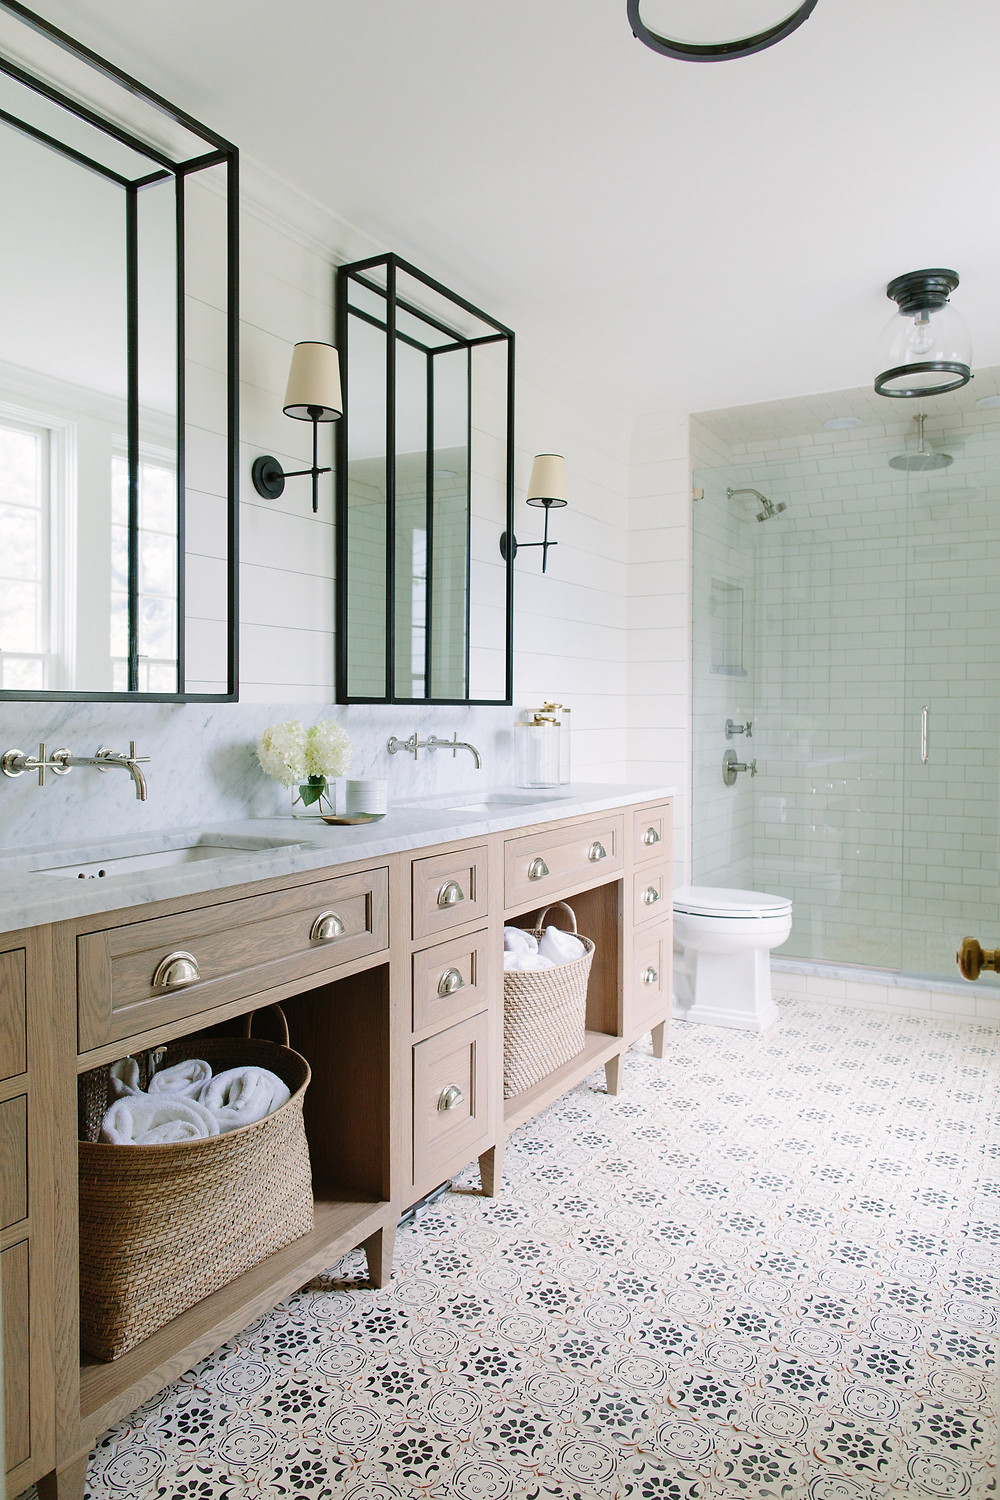 marble countertop concrete patterned tile floor bathroom wood double sink vanity open storage baskets with towels wall mounted hardware black framed mirrors wall sconces walk in tile shower subway shiplap walls nautical light fixture